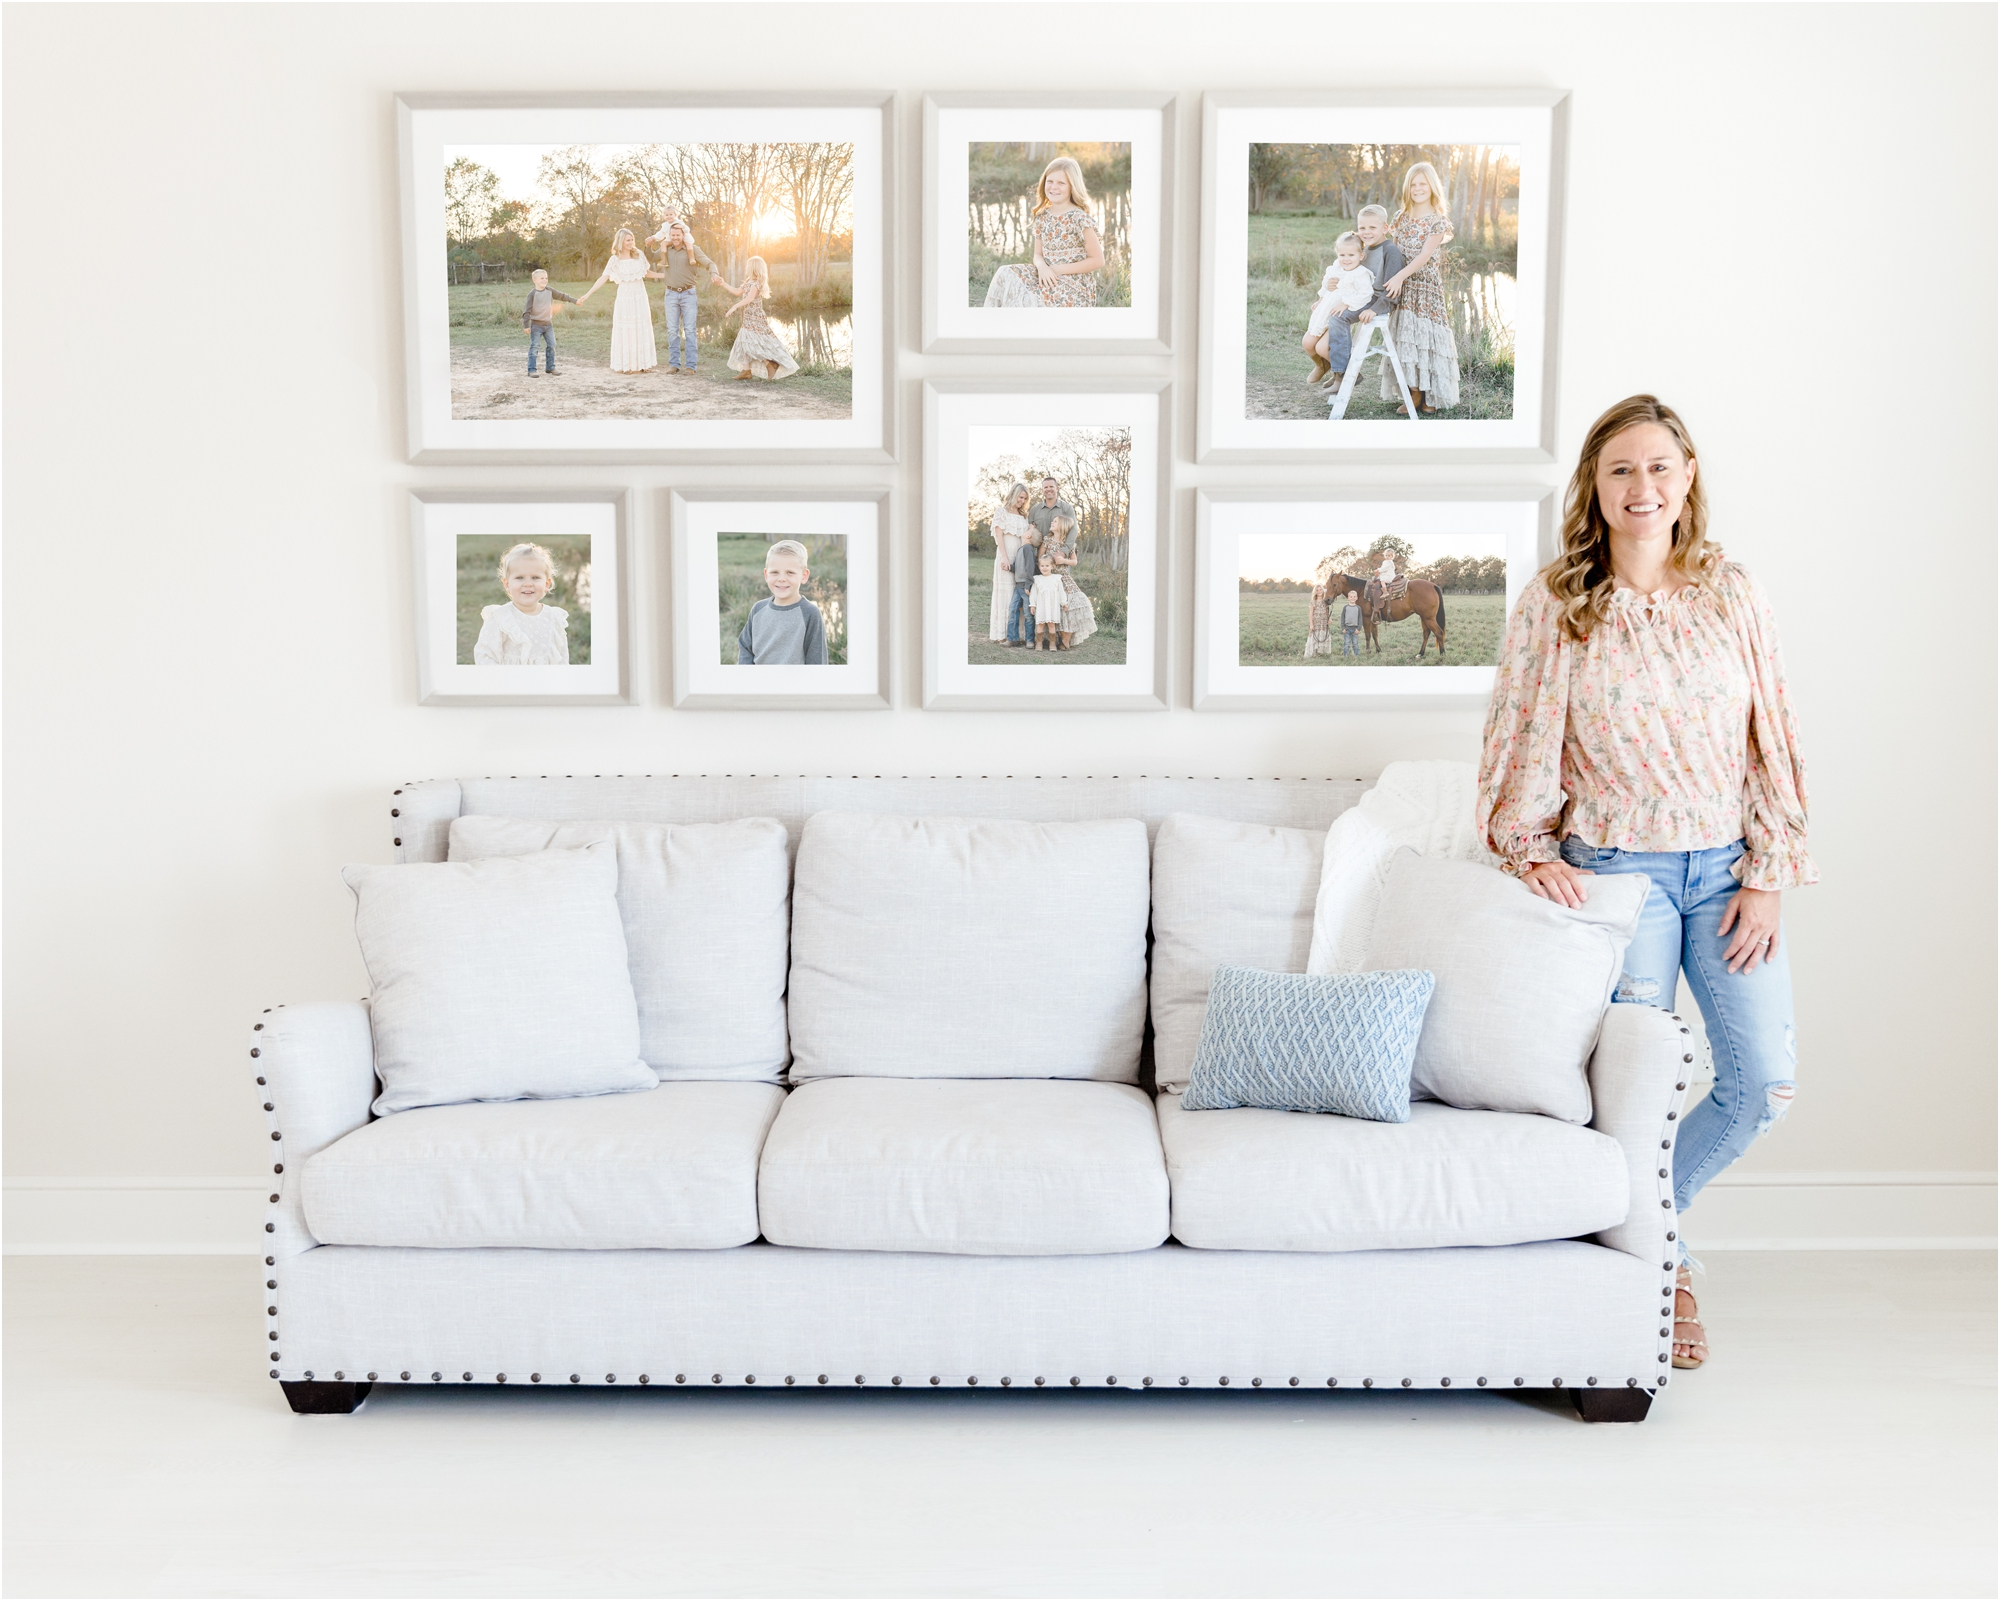 Kelly from Lifetime of Clicks Photography in her studio with large, custom wall art design above couch.